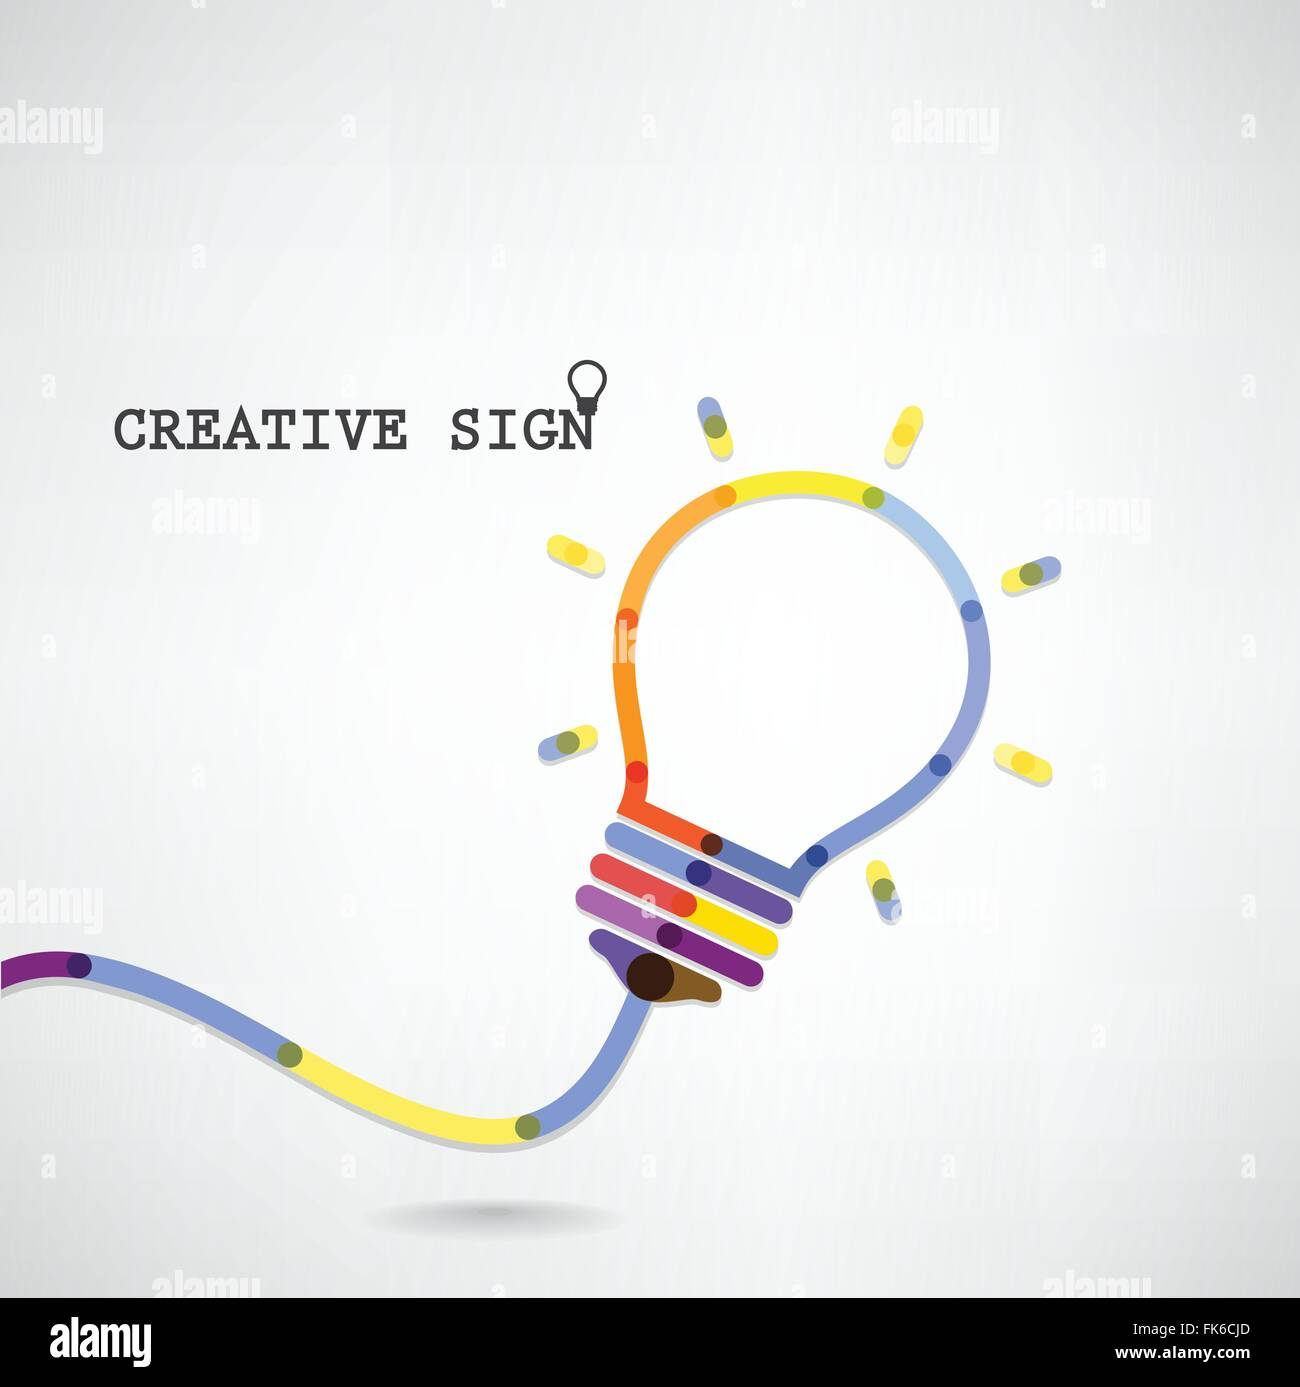 hight resolution of creative light bulb idea concept background design for poster flyer cover brochure business idea abstract background vector i